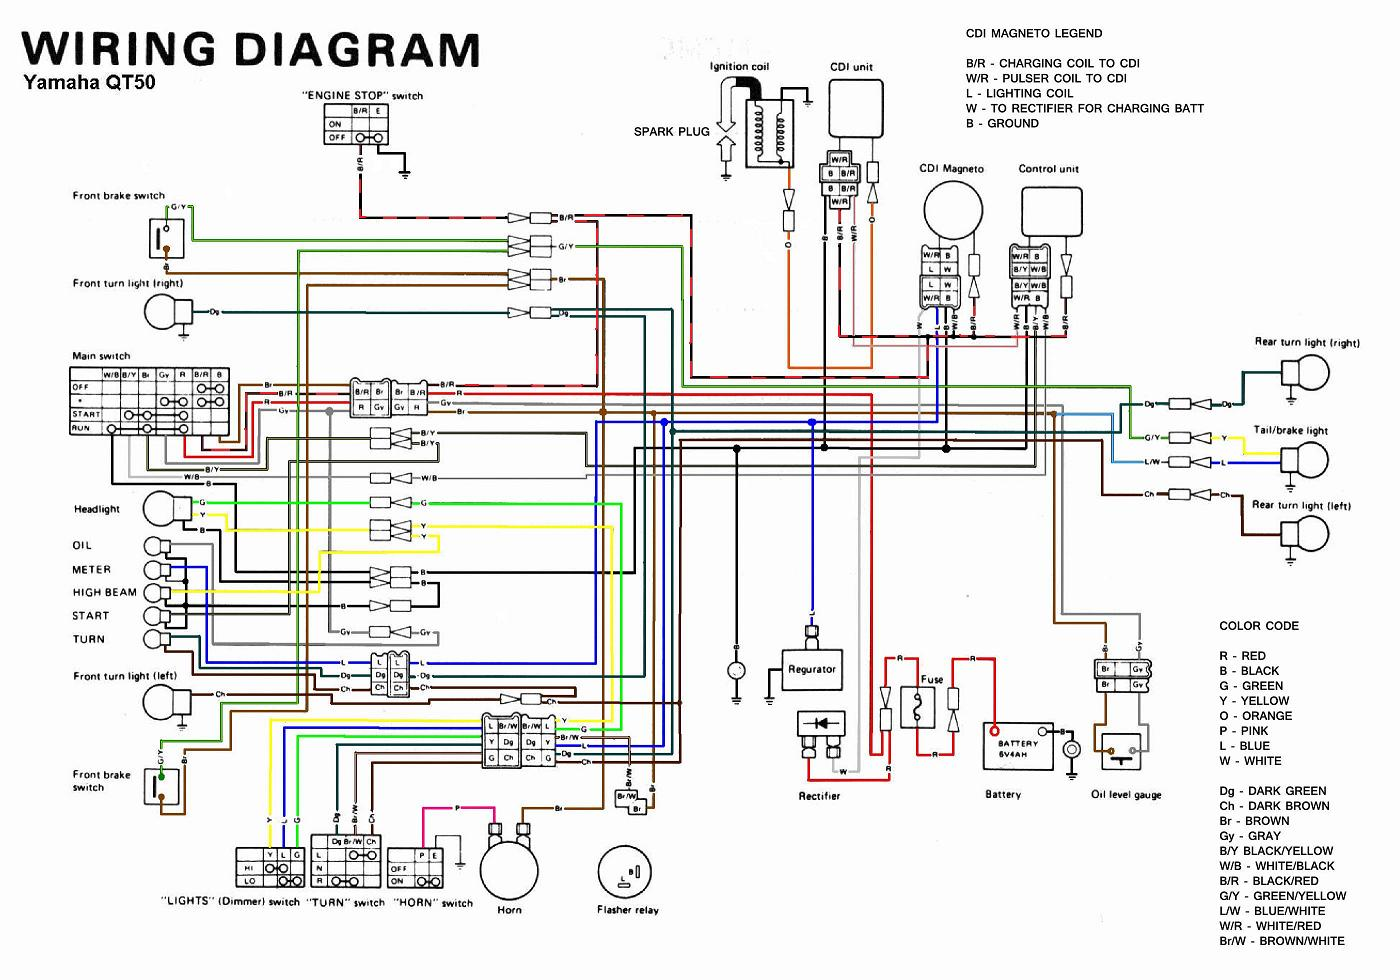 1980 Honda Cb750 Wire Diagram Coil - Radio Wiring Diagram •